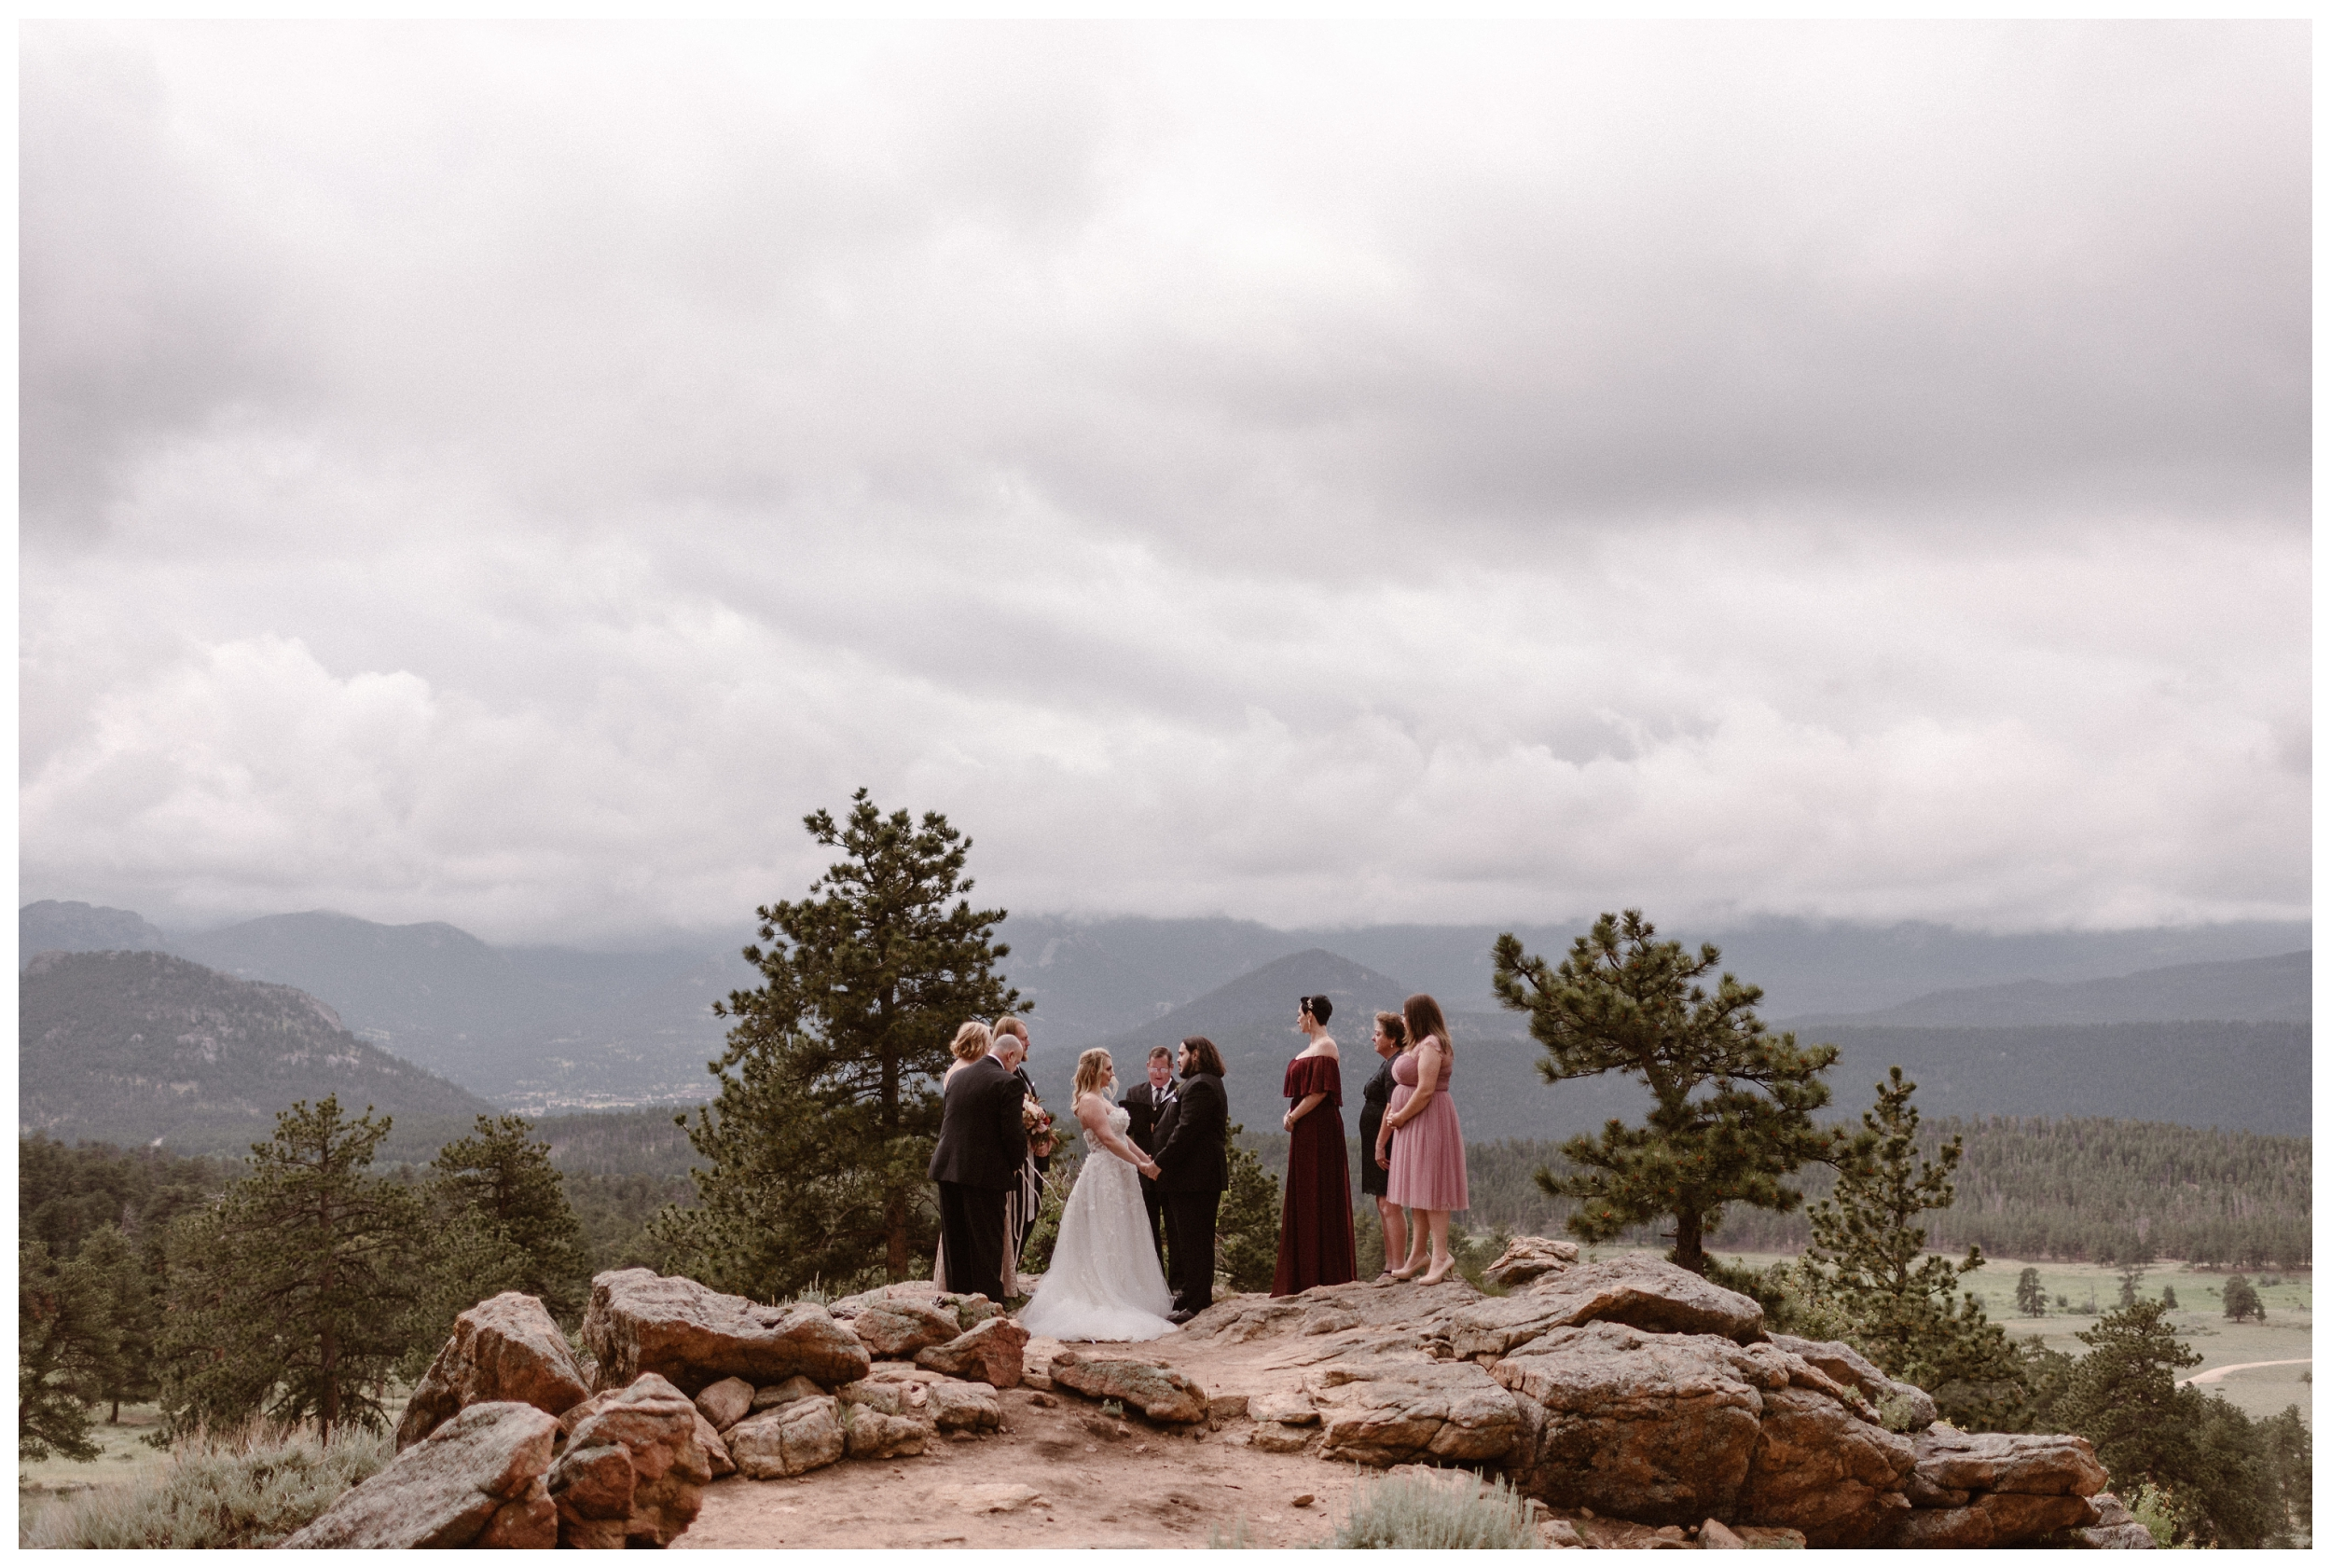 Surrounded by the Rocky Mountains, Alicia and Zach chose to elope at Rocky Mountain National Park in Estes Park, Colorado. Photo by Adventure Instead, Maddie Mae.